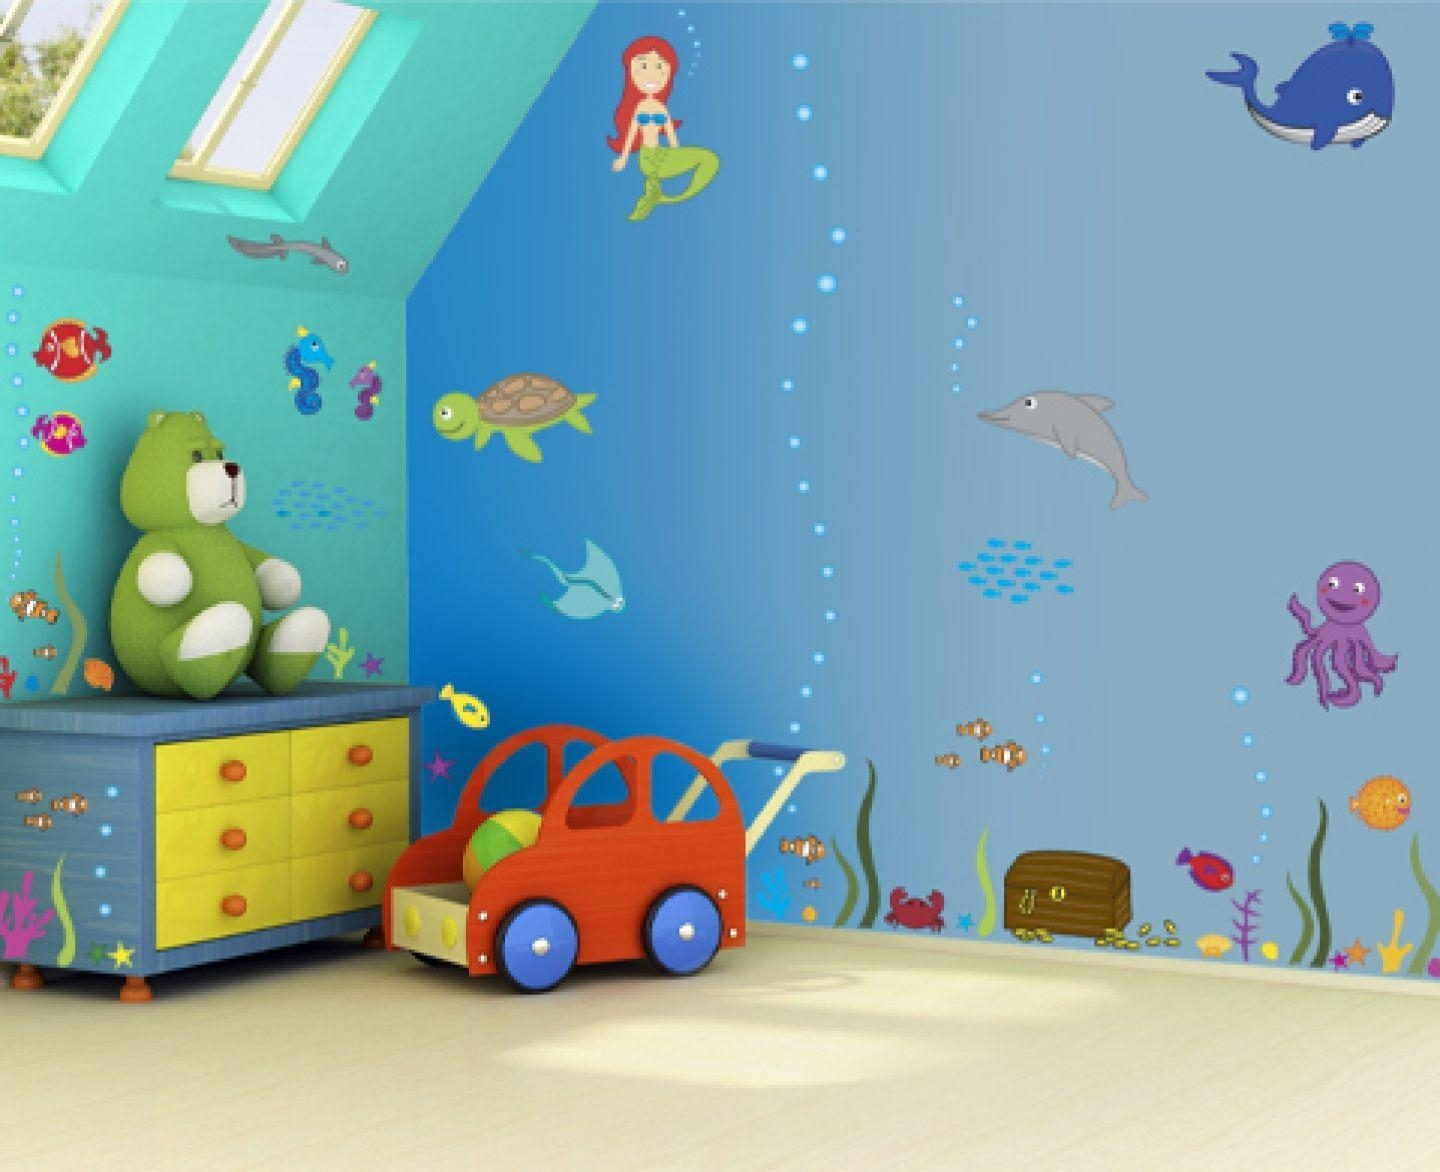 Wall Art For Kids' Bedrooms Enhancing The Family Togetherness Throughout Children Wall Art (View 20 of 20)